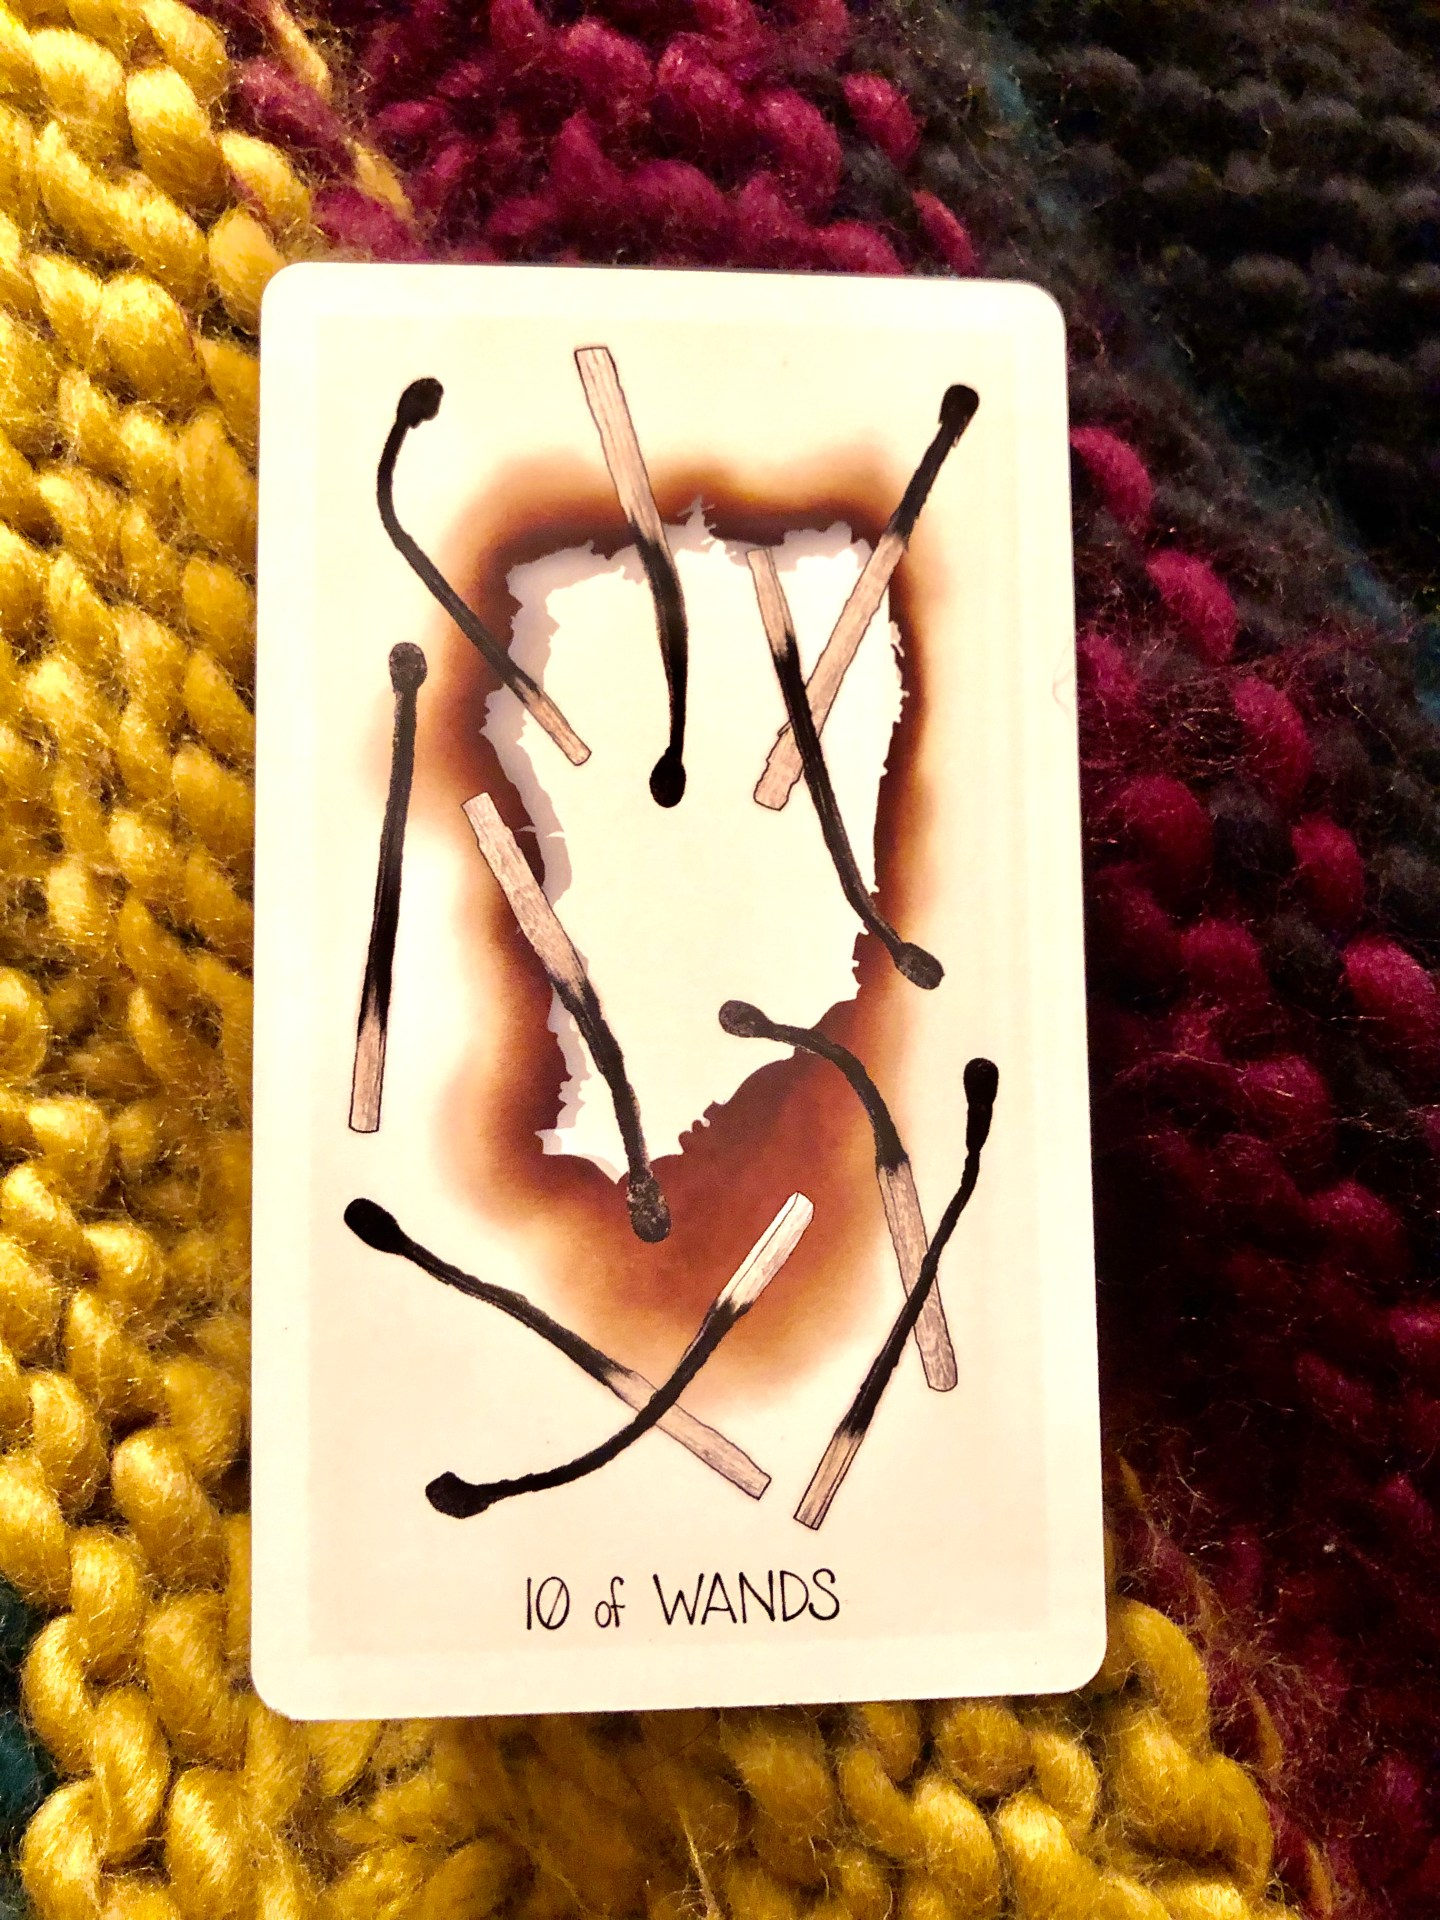 Tarot Card of the Week: 10 of Wands